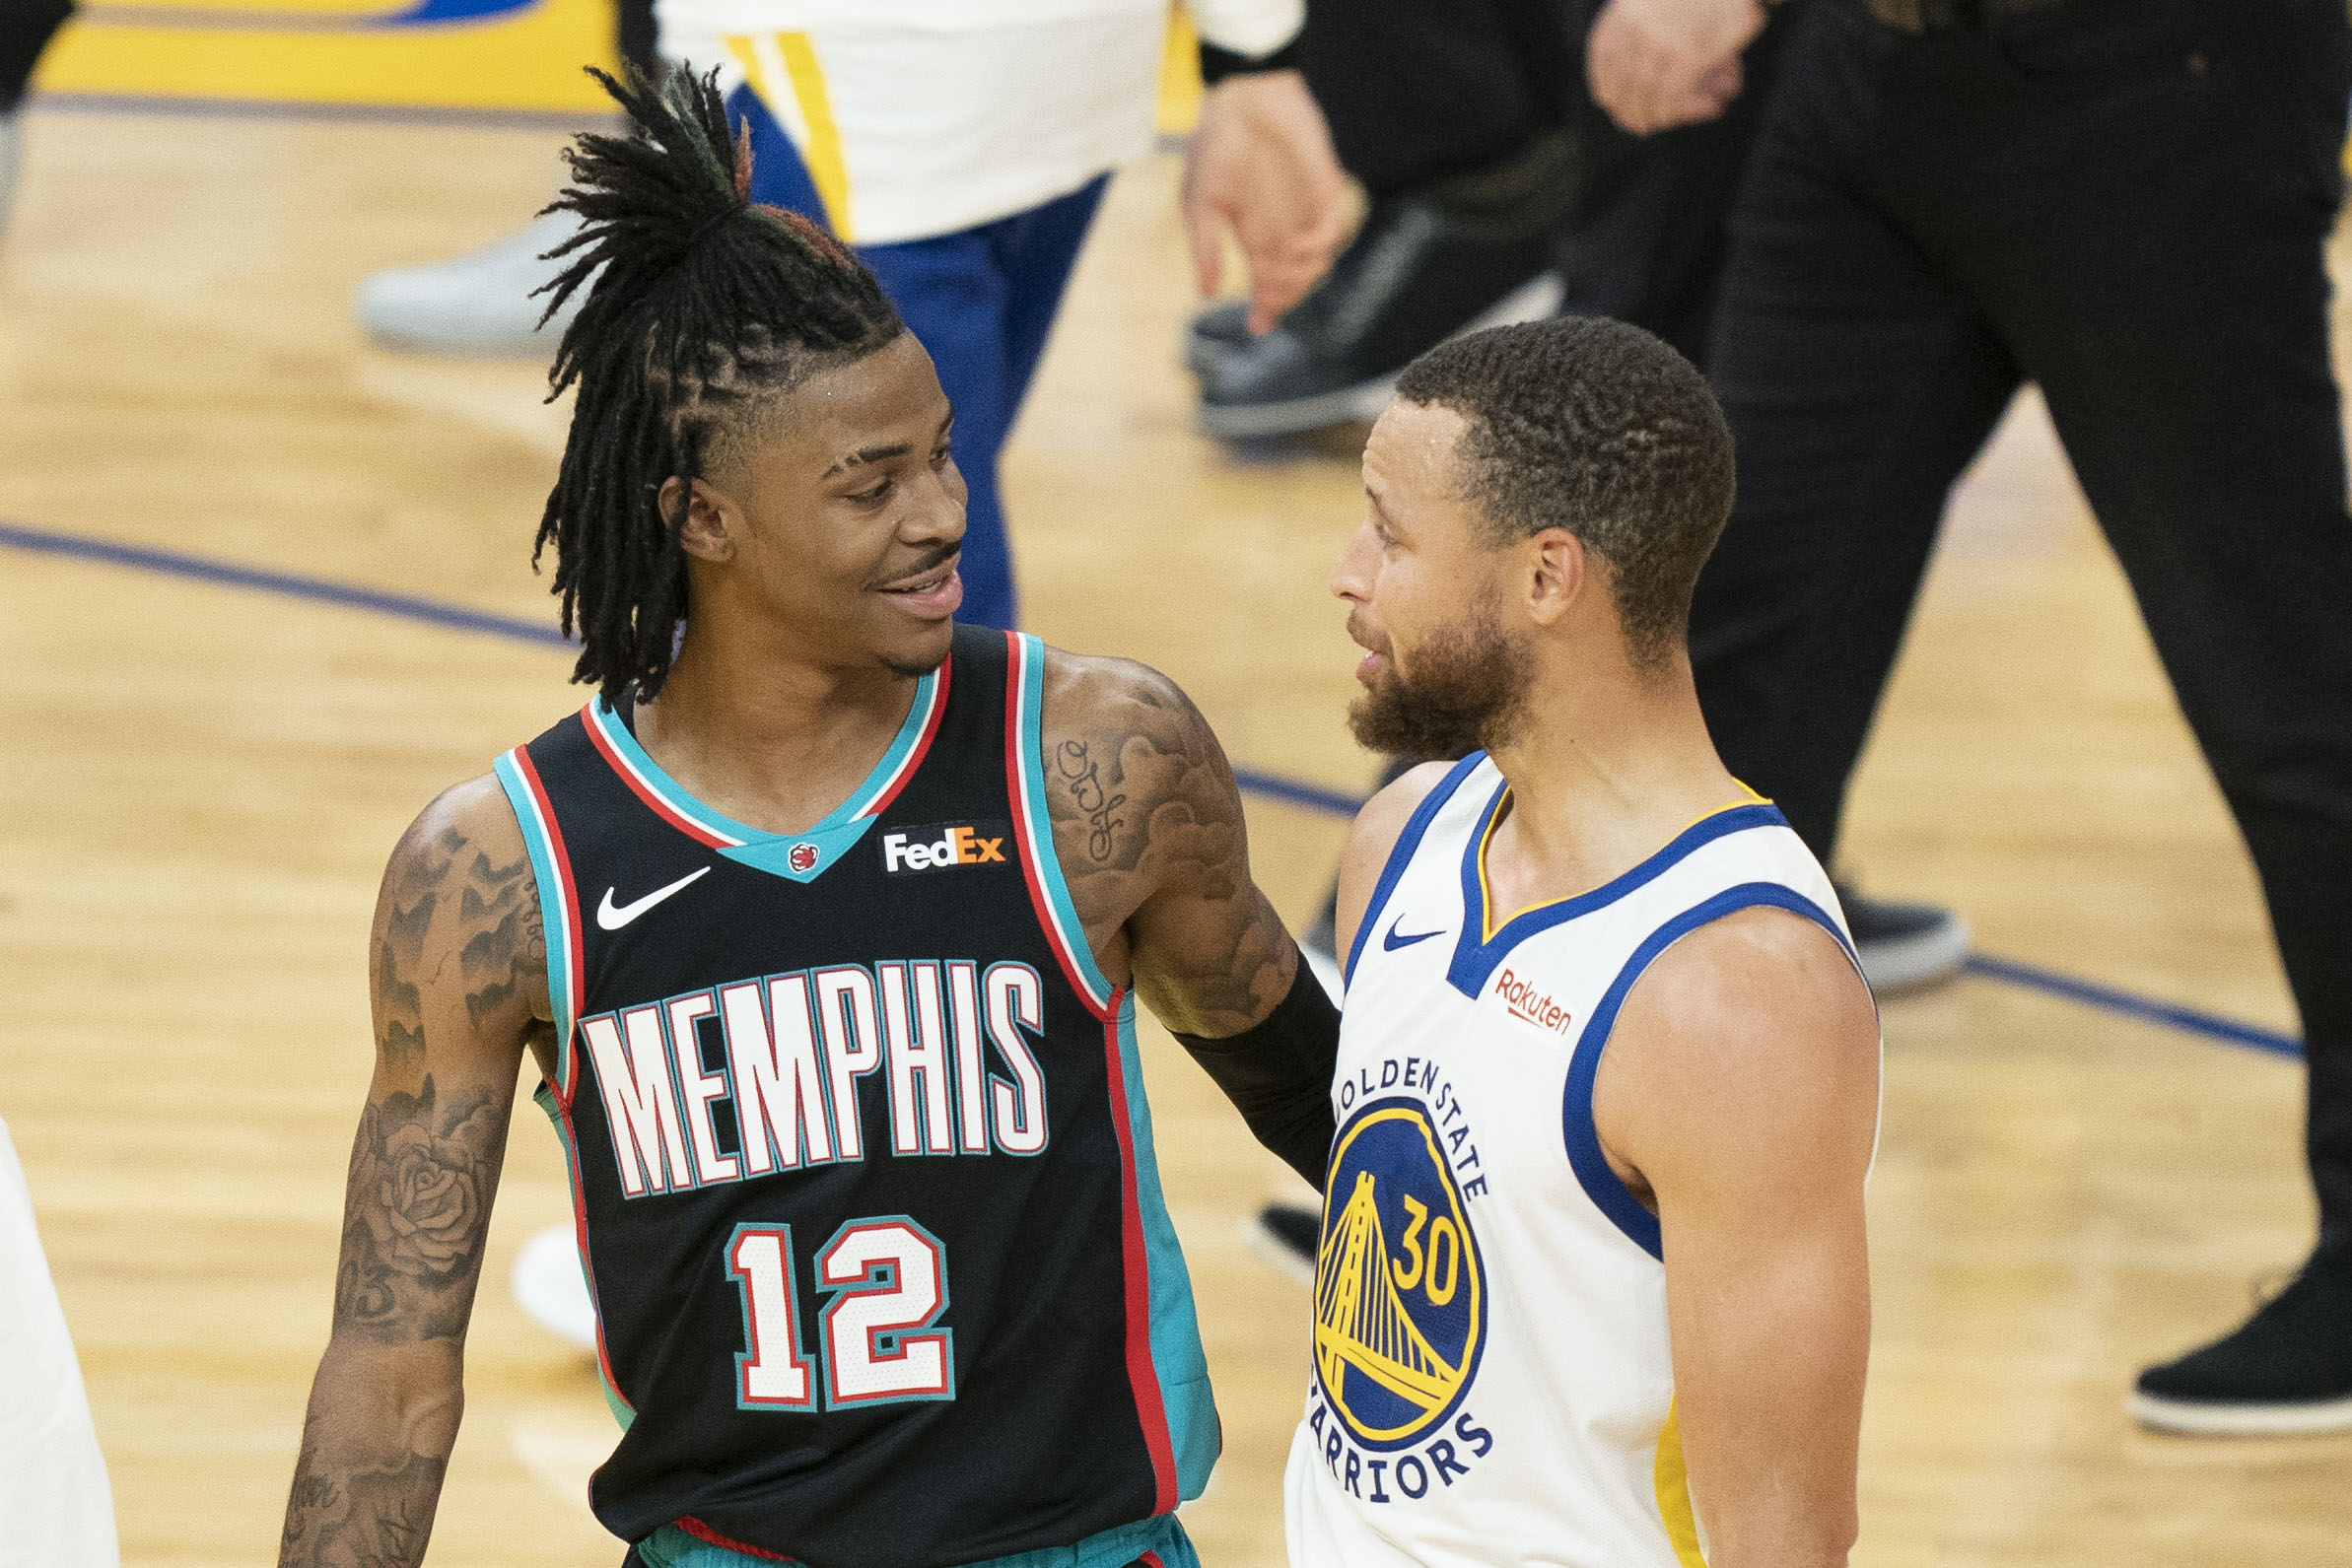 May 16, 2021; San Francisco, California, USA; Memphis Grizzlies guard Ja Morant (12) talks to Golden State Warriors guard Stephen Curry (30) after the game at Chase Center. Mandatory Credit: Kyle Terada-USA TODAY Sports